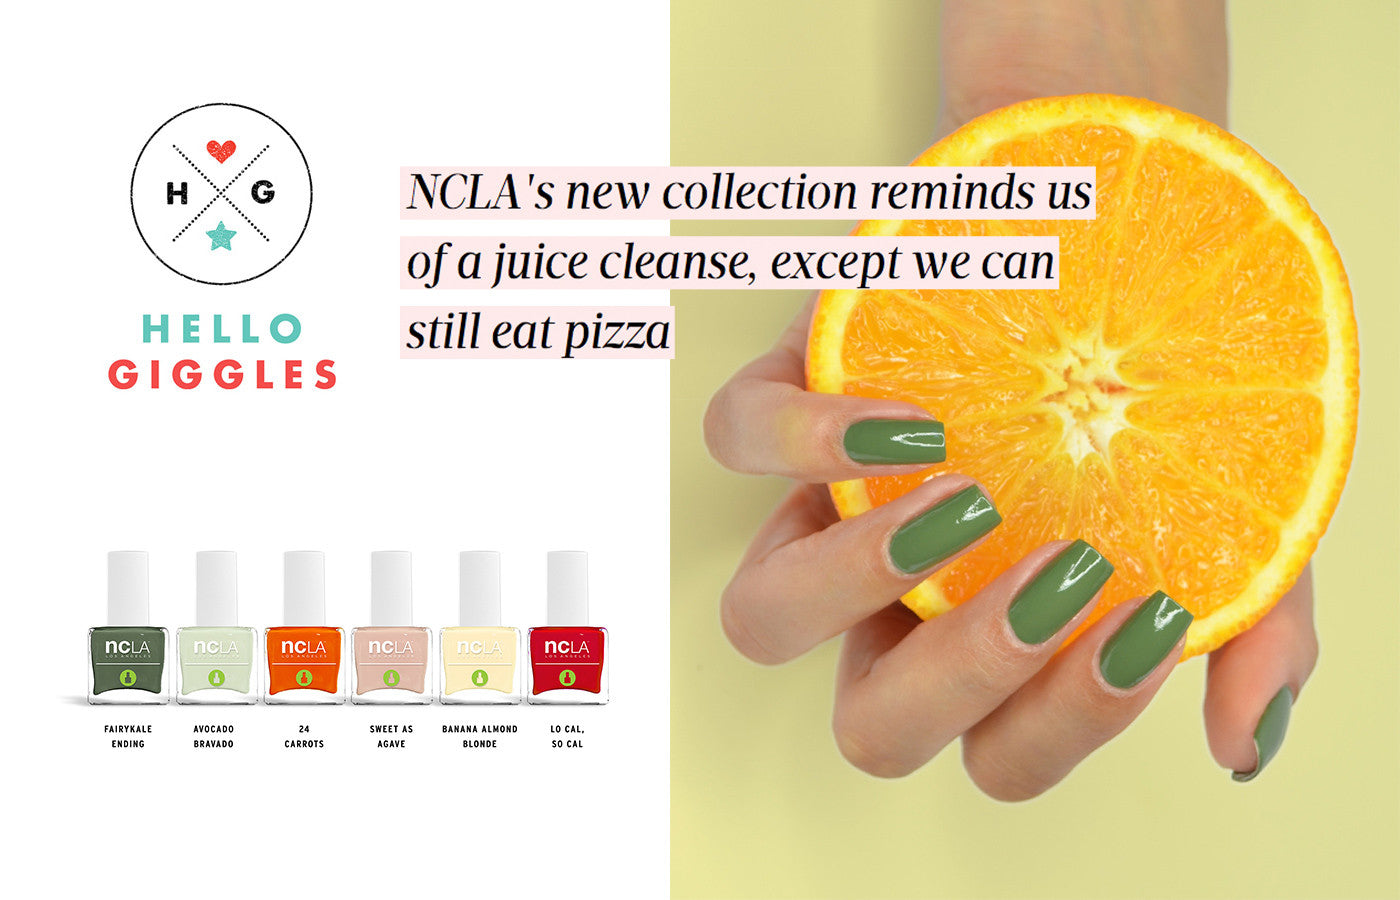 Hello Giggles: NCLA's new collection reminds us of a juice cleanse, except we can still eat pizza